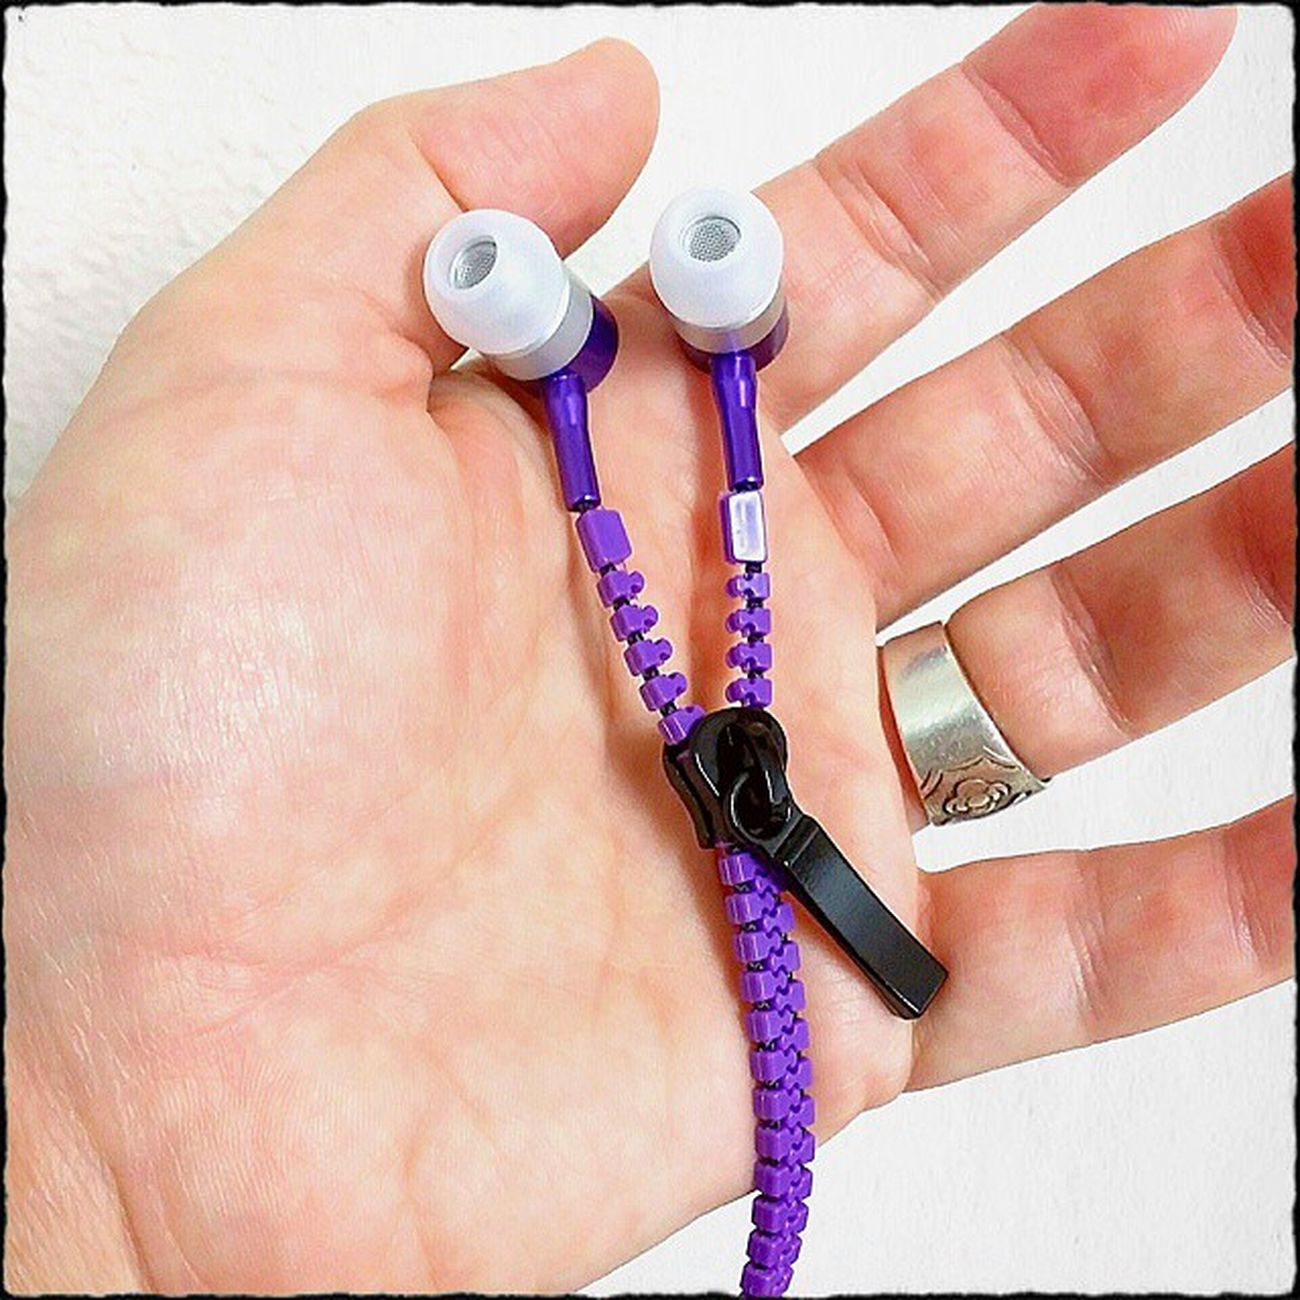 My awesome sister @erinjamison sent me an early birthday present in the mail & I got it today. You can't go wrong with purple zipper headphones! Now I can give @dlzrd's headphones back to him. Music, here I come!! 🎶🎧🎶 Birthdaypresent Purplezipperheadphones Ilovepurple Zipperheadphones Zipper Ilovemusic Rockingout Hapiness Cellphonephotography Pixlromatic Portorchardwashington Samsunggalaxynote3